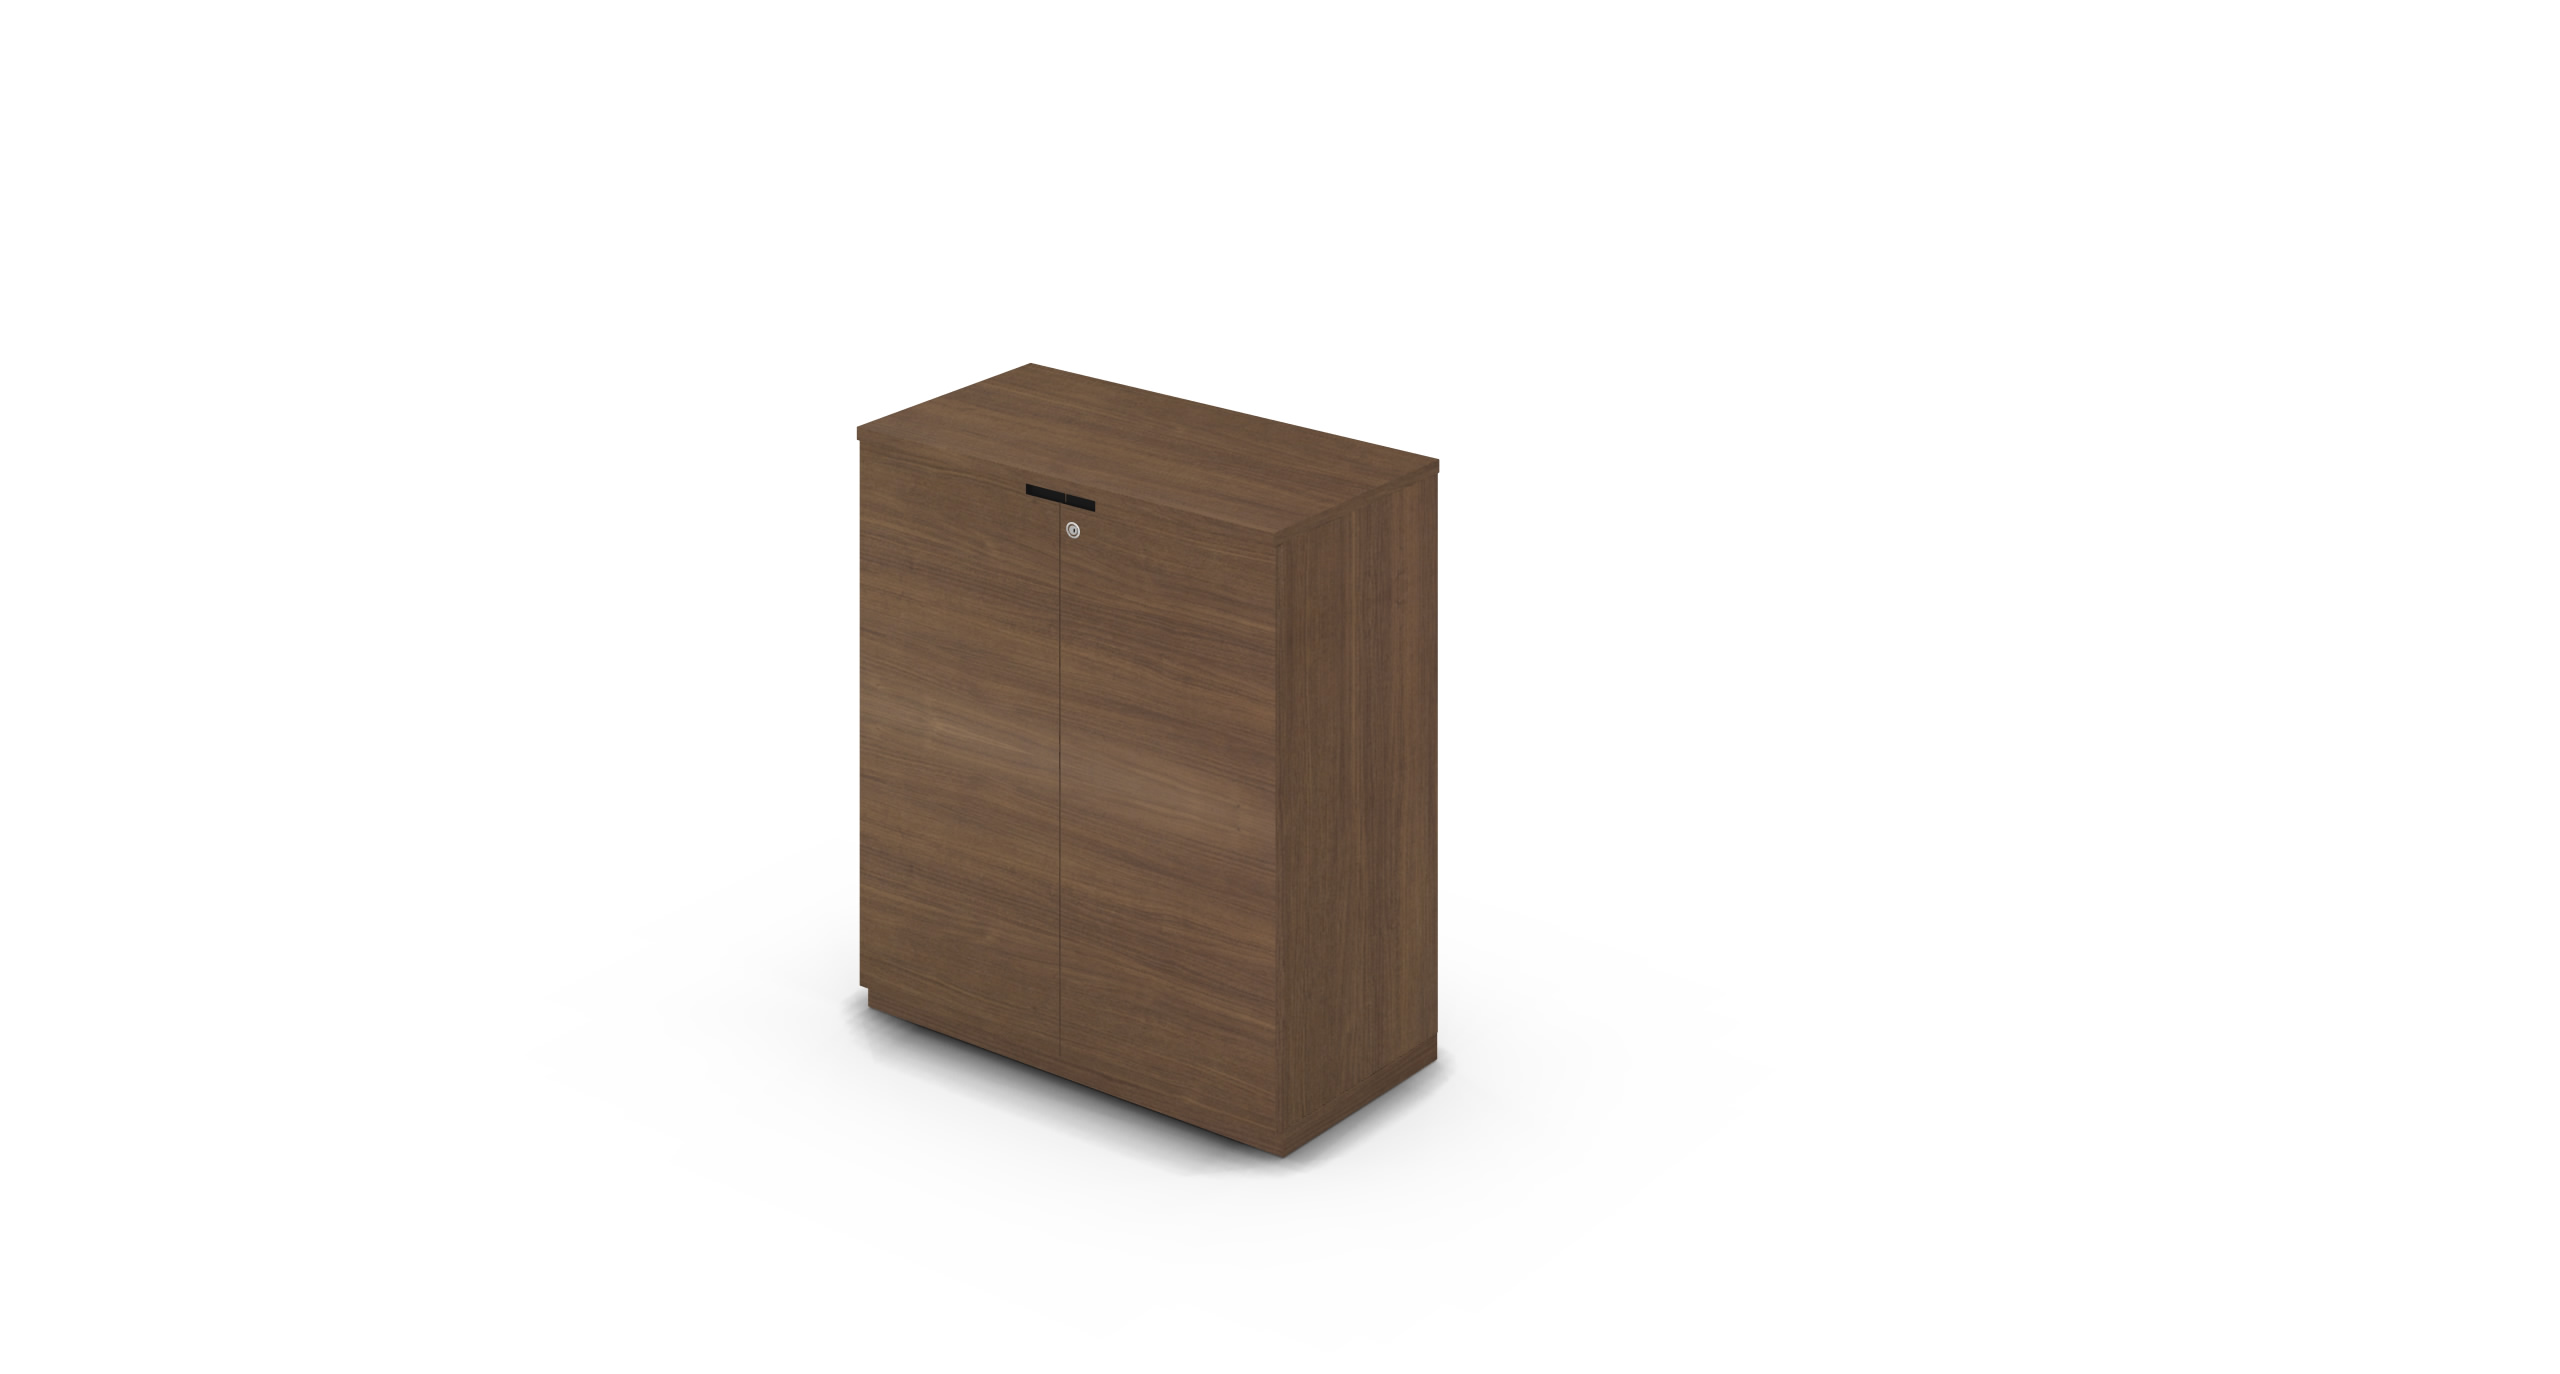 Cabinet_900x450x1125_HD_Walnut_CutOut_WithCylinder